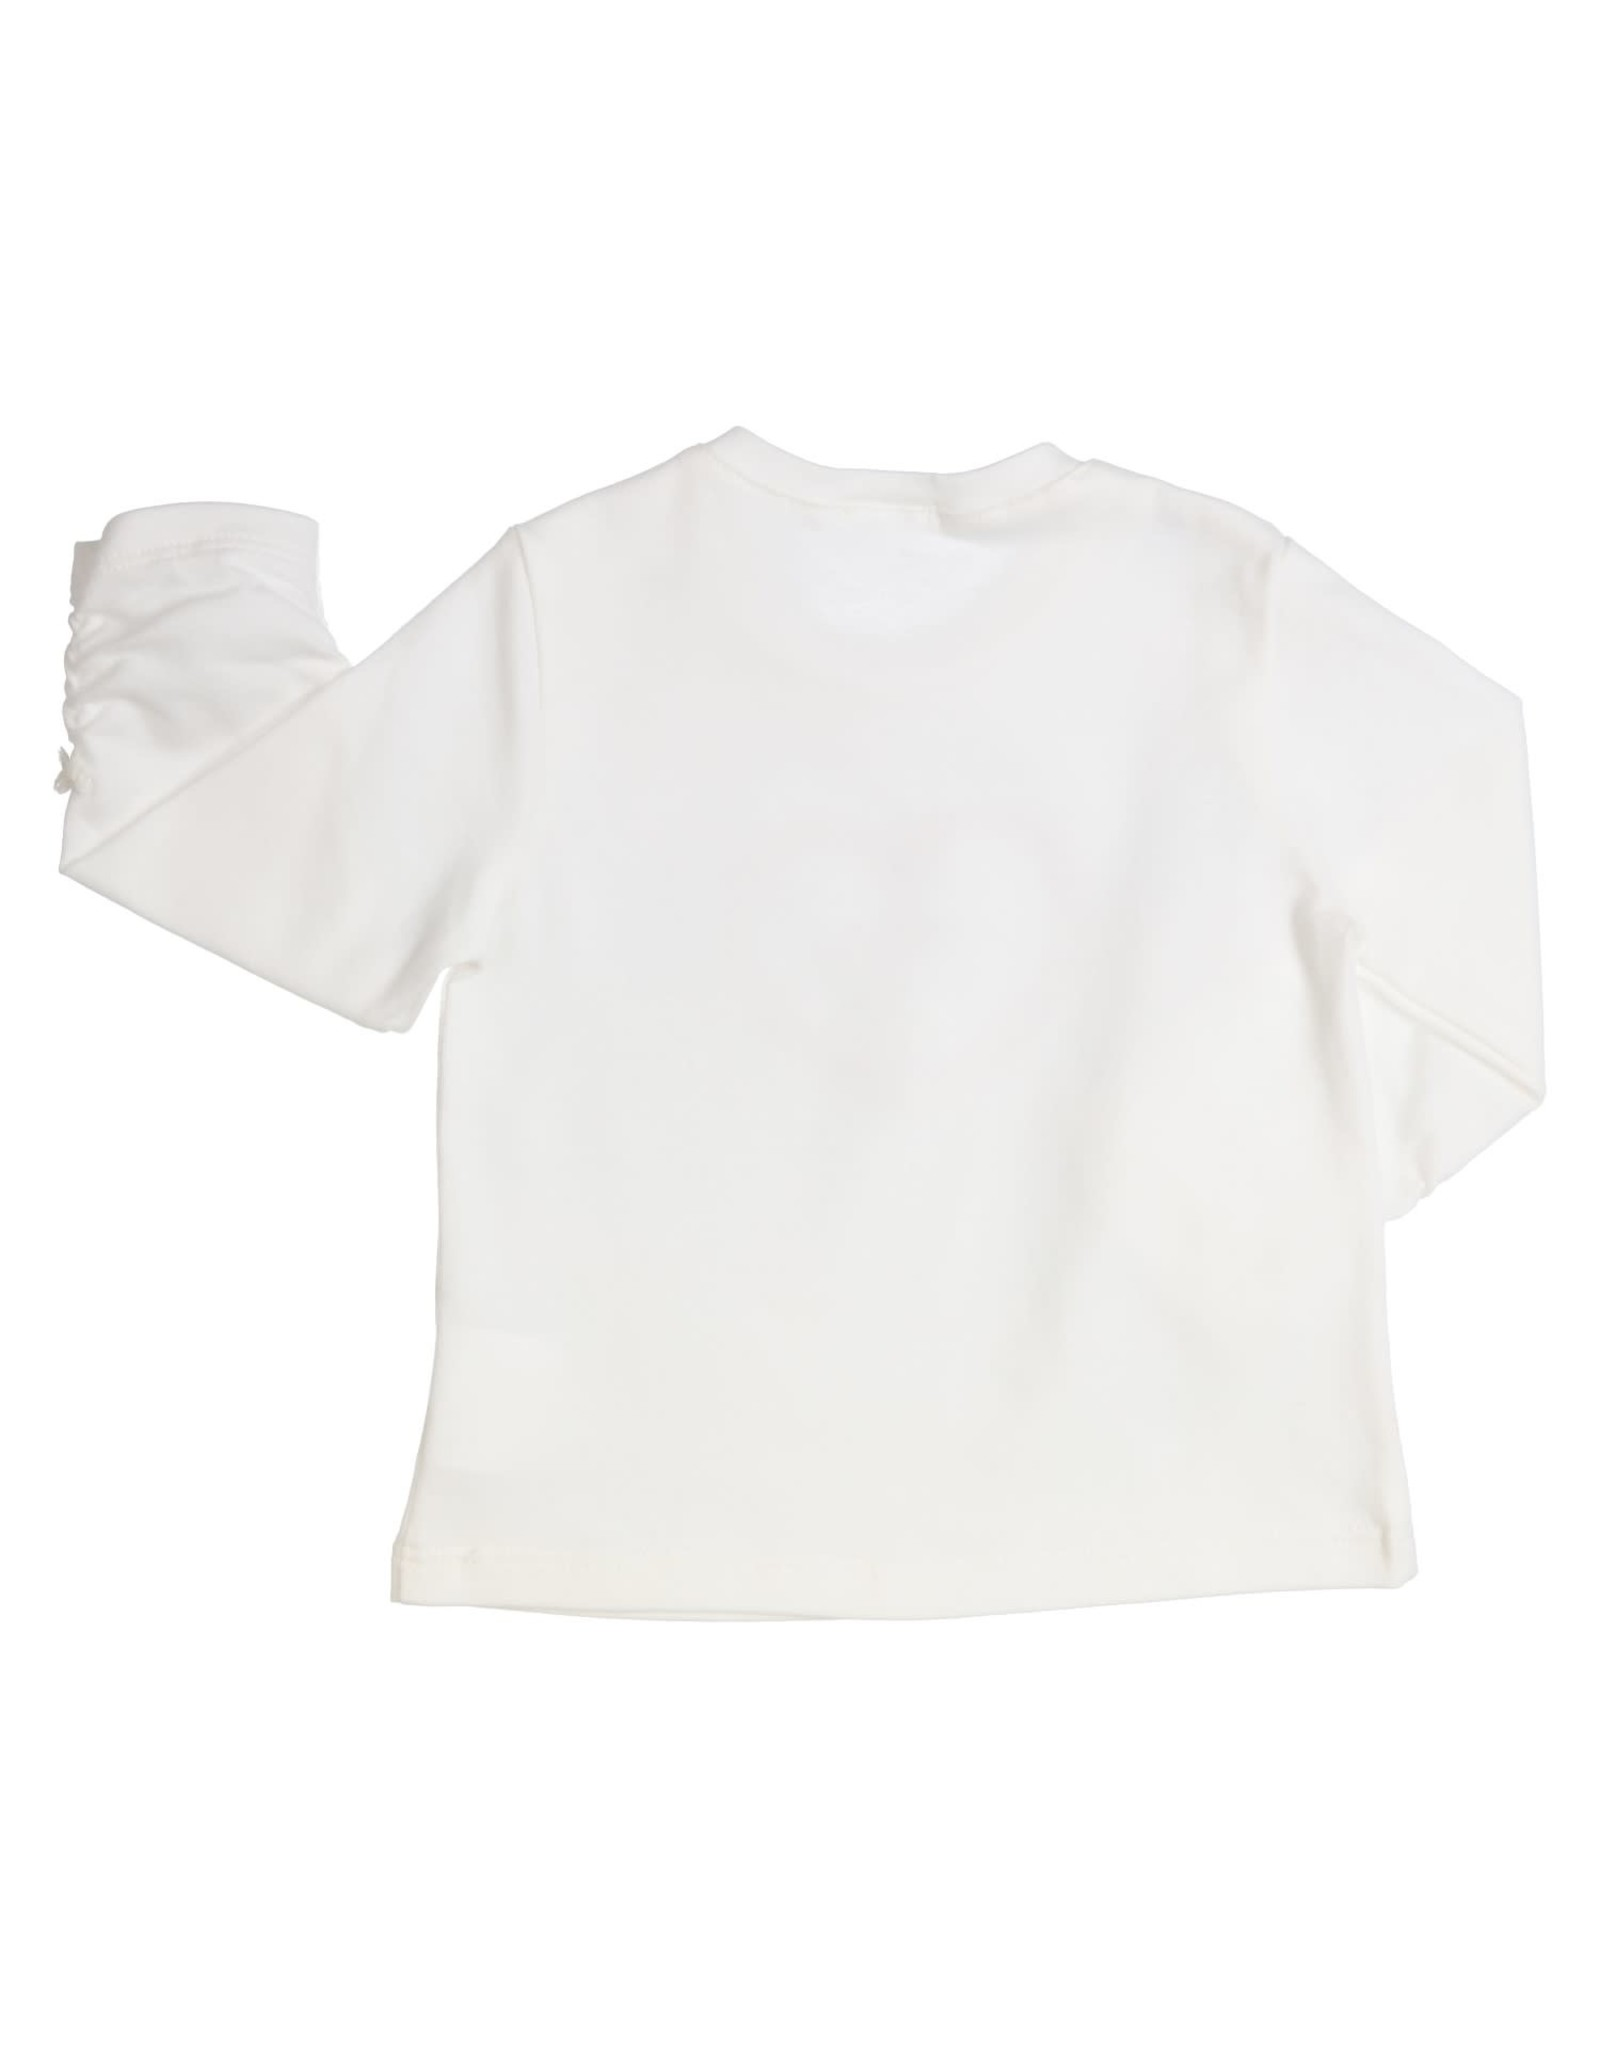 Gymp LONGSLEEVE - ESPECIALLY FOR YO OFF-WHITE